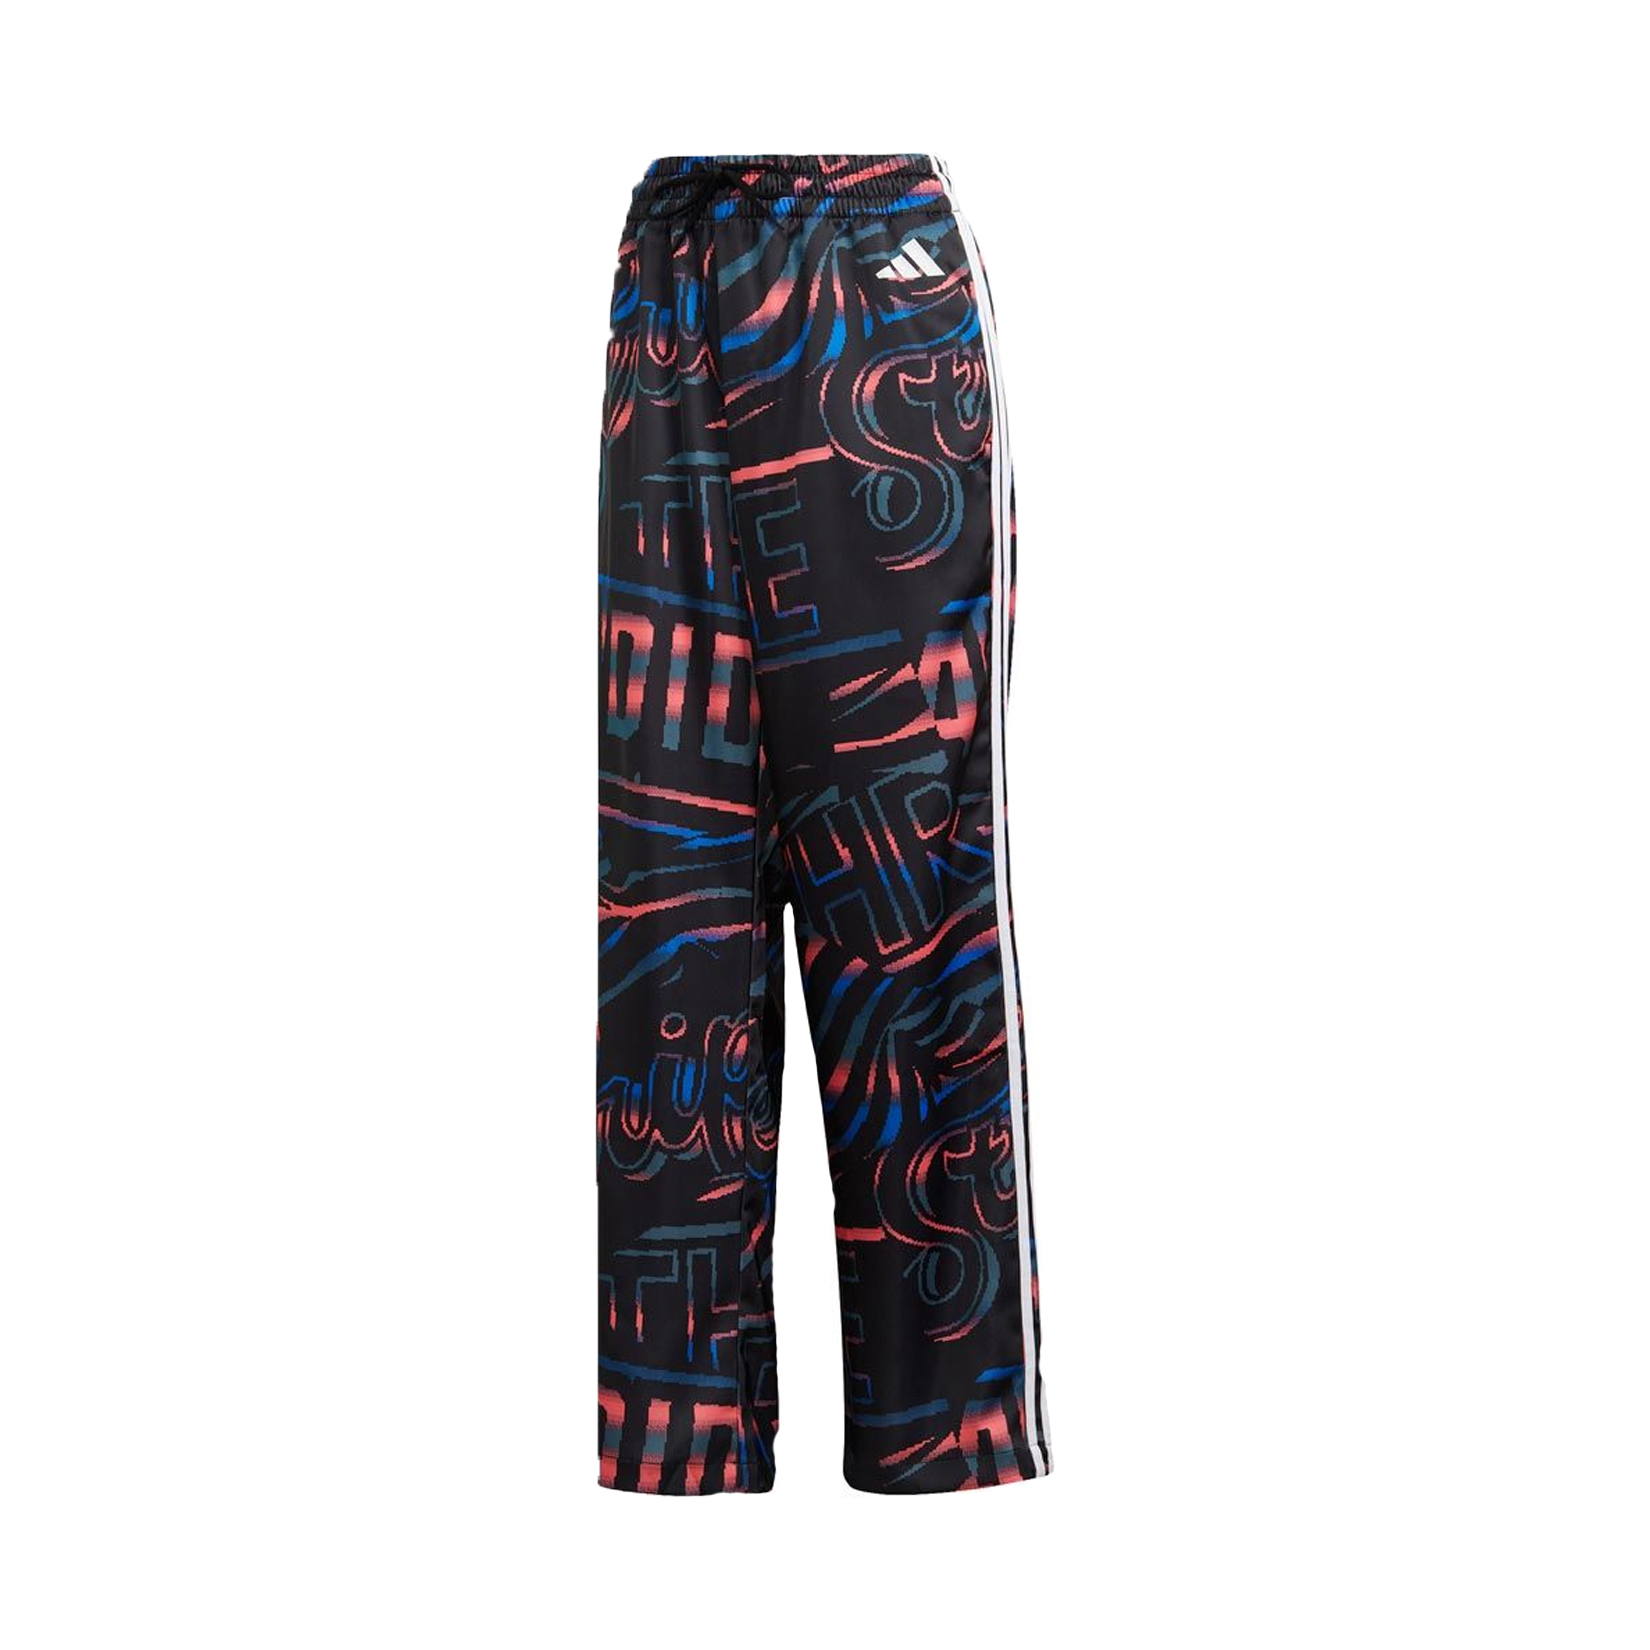 Adidas All Over Print 3 Stripes Wide Pants Black